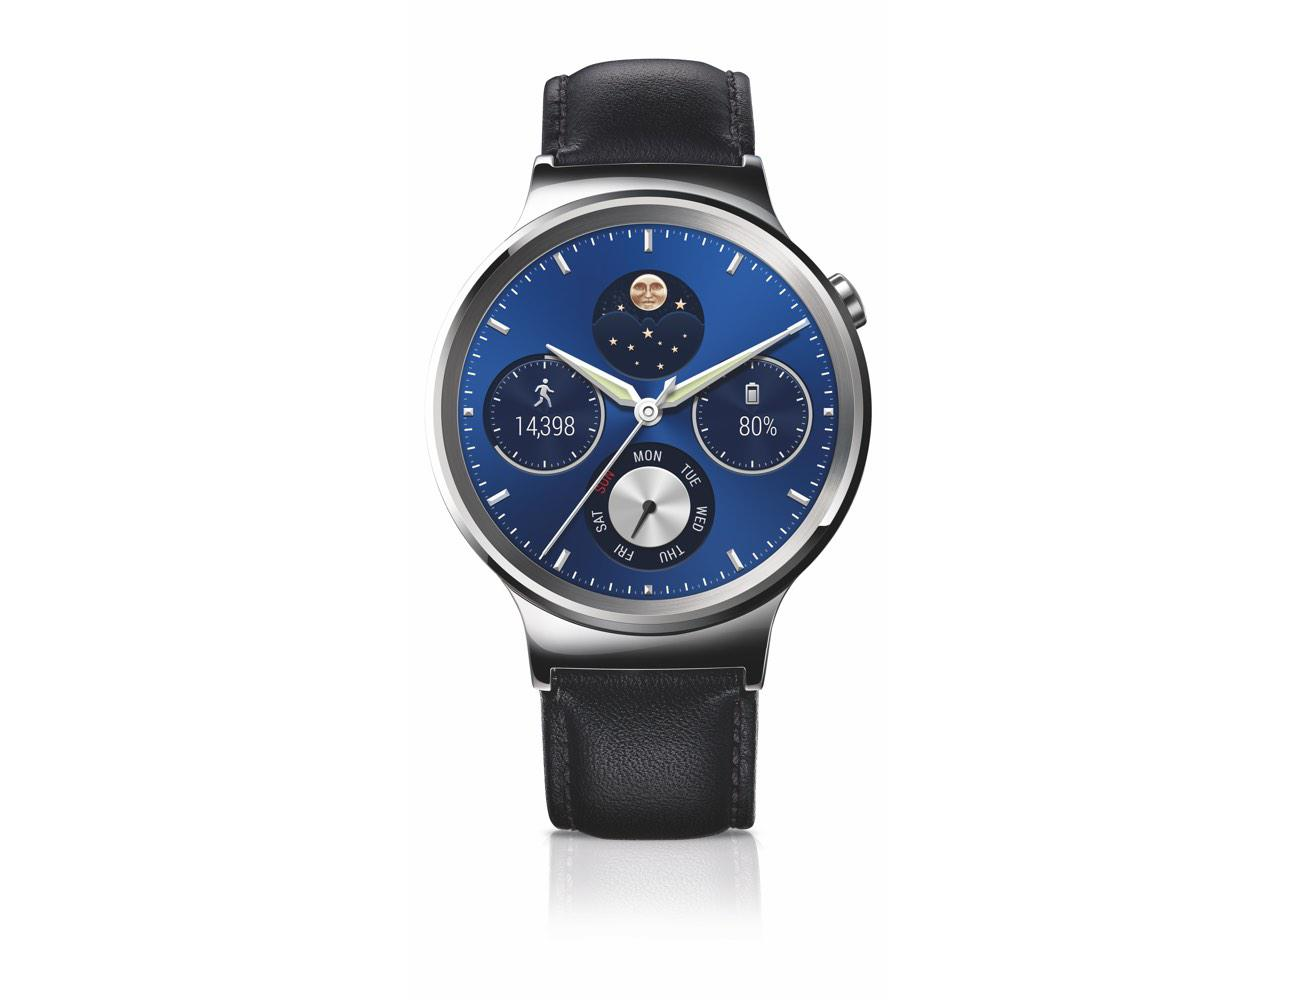 huawei smartwatch alle huawei produkte tests news. Black Bedroom Furniture Sets. Home Design Ideas